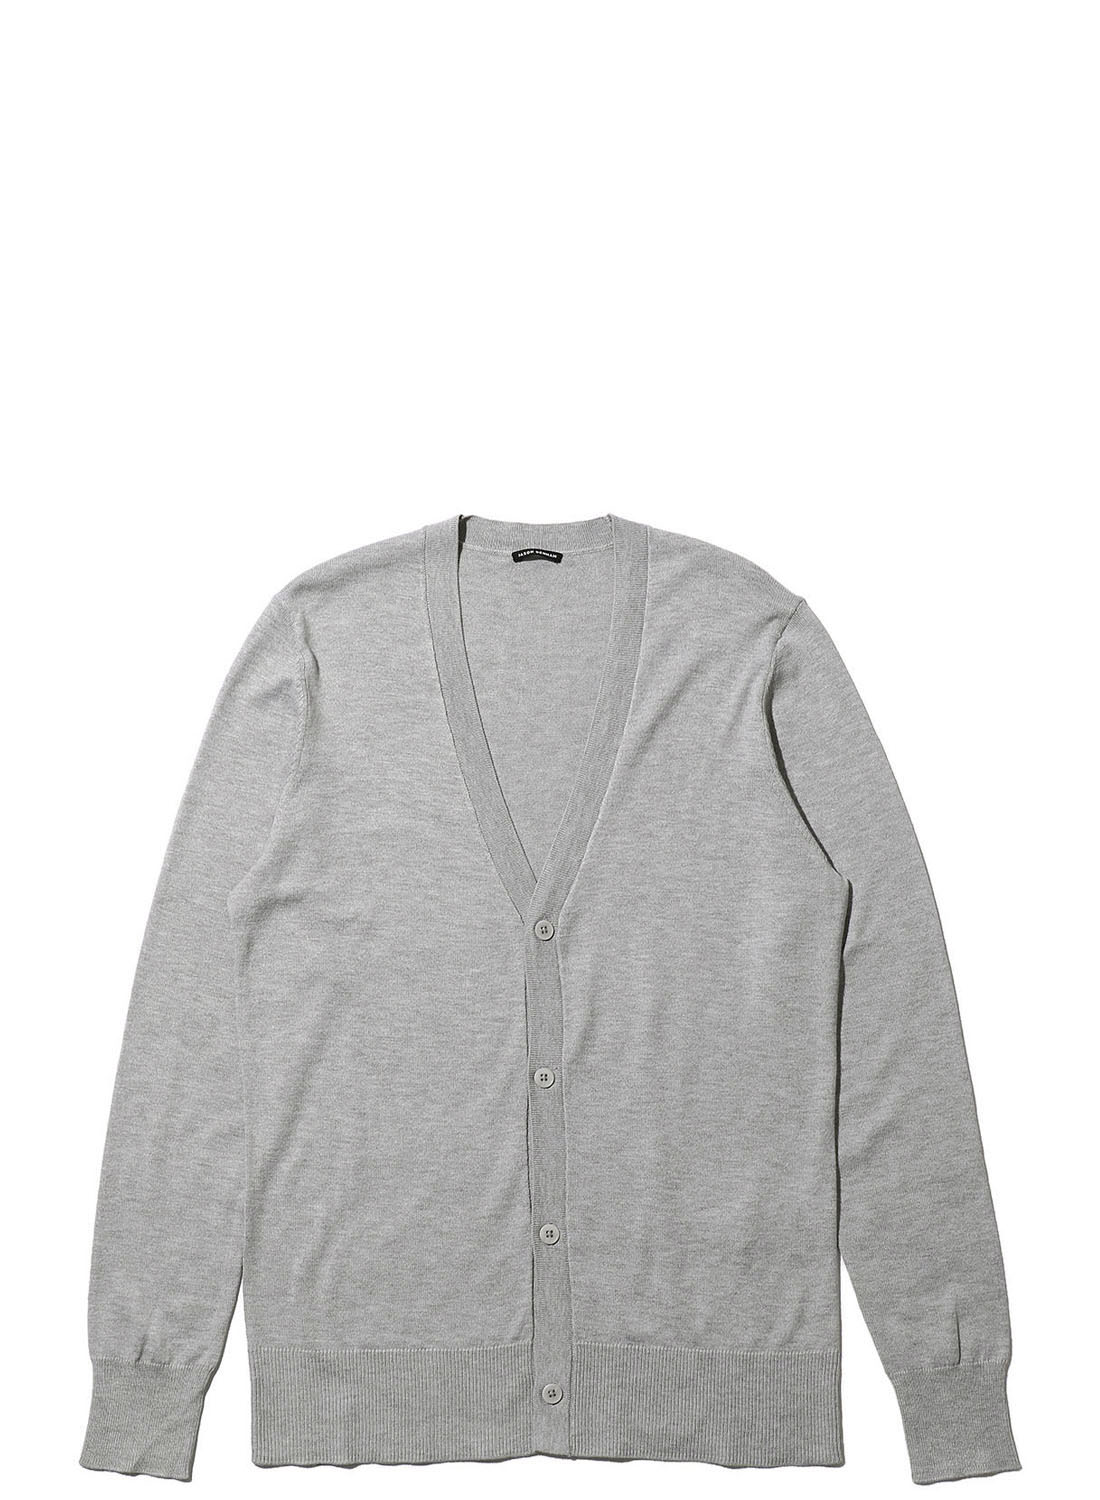 【JASON DENHAM COLLECTION】 COOLMAX CARDIGAN CSK